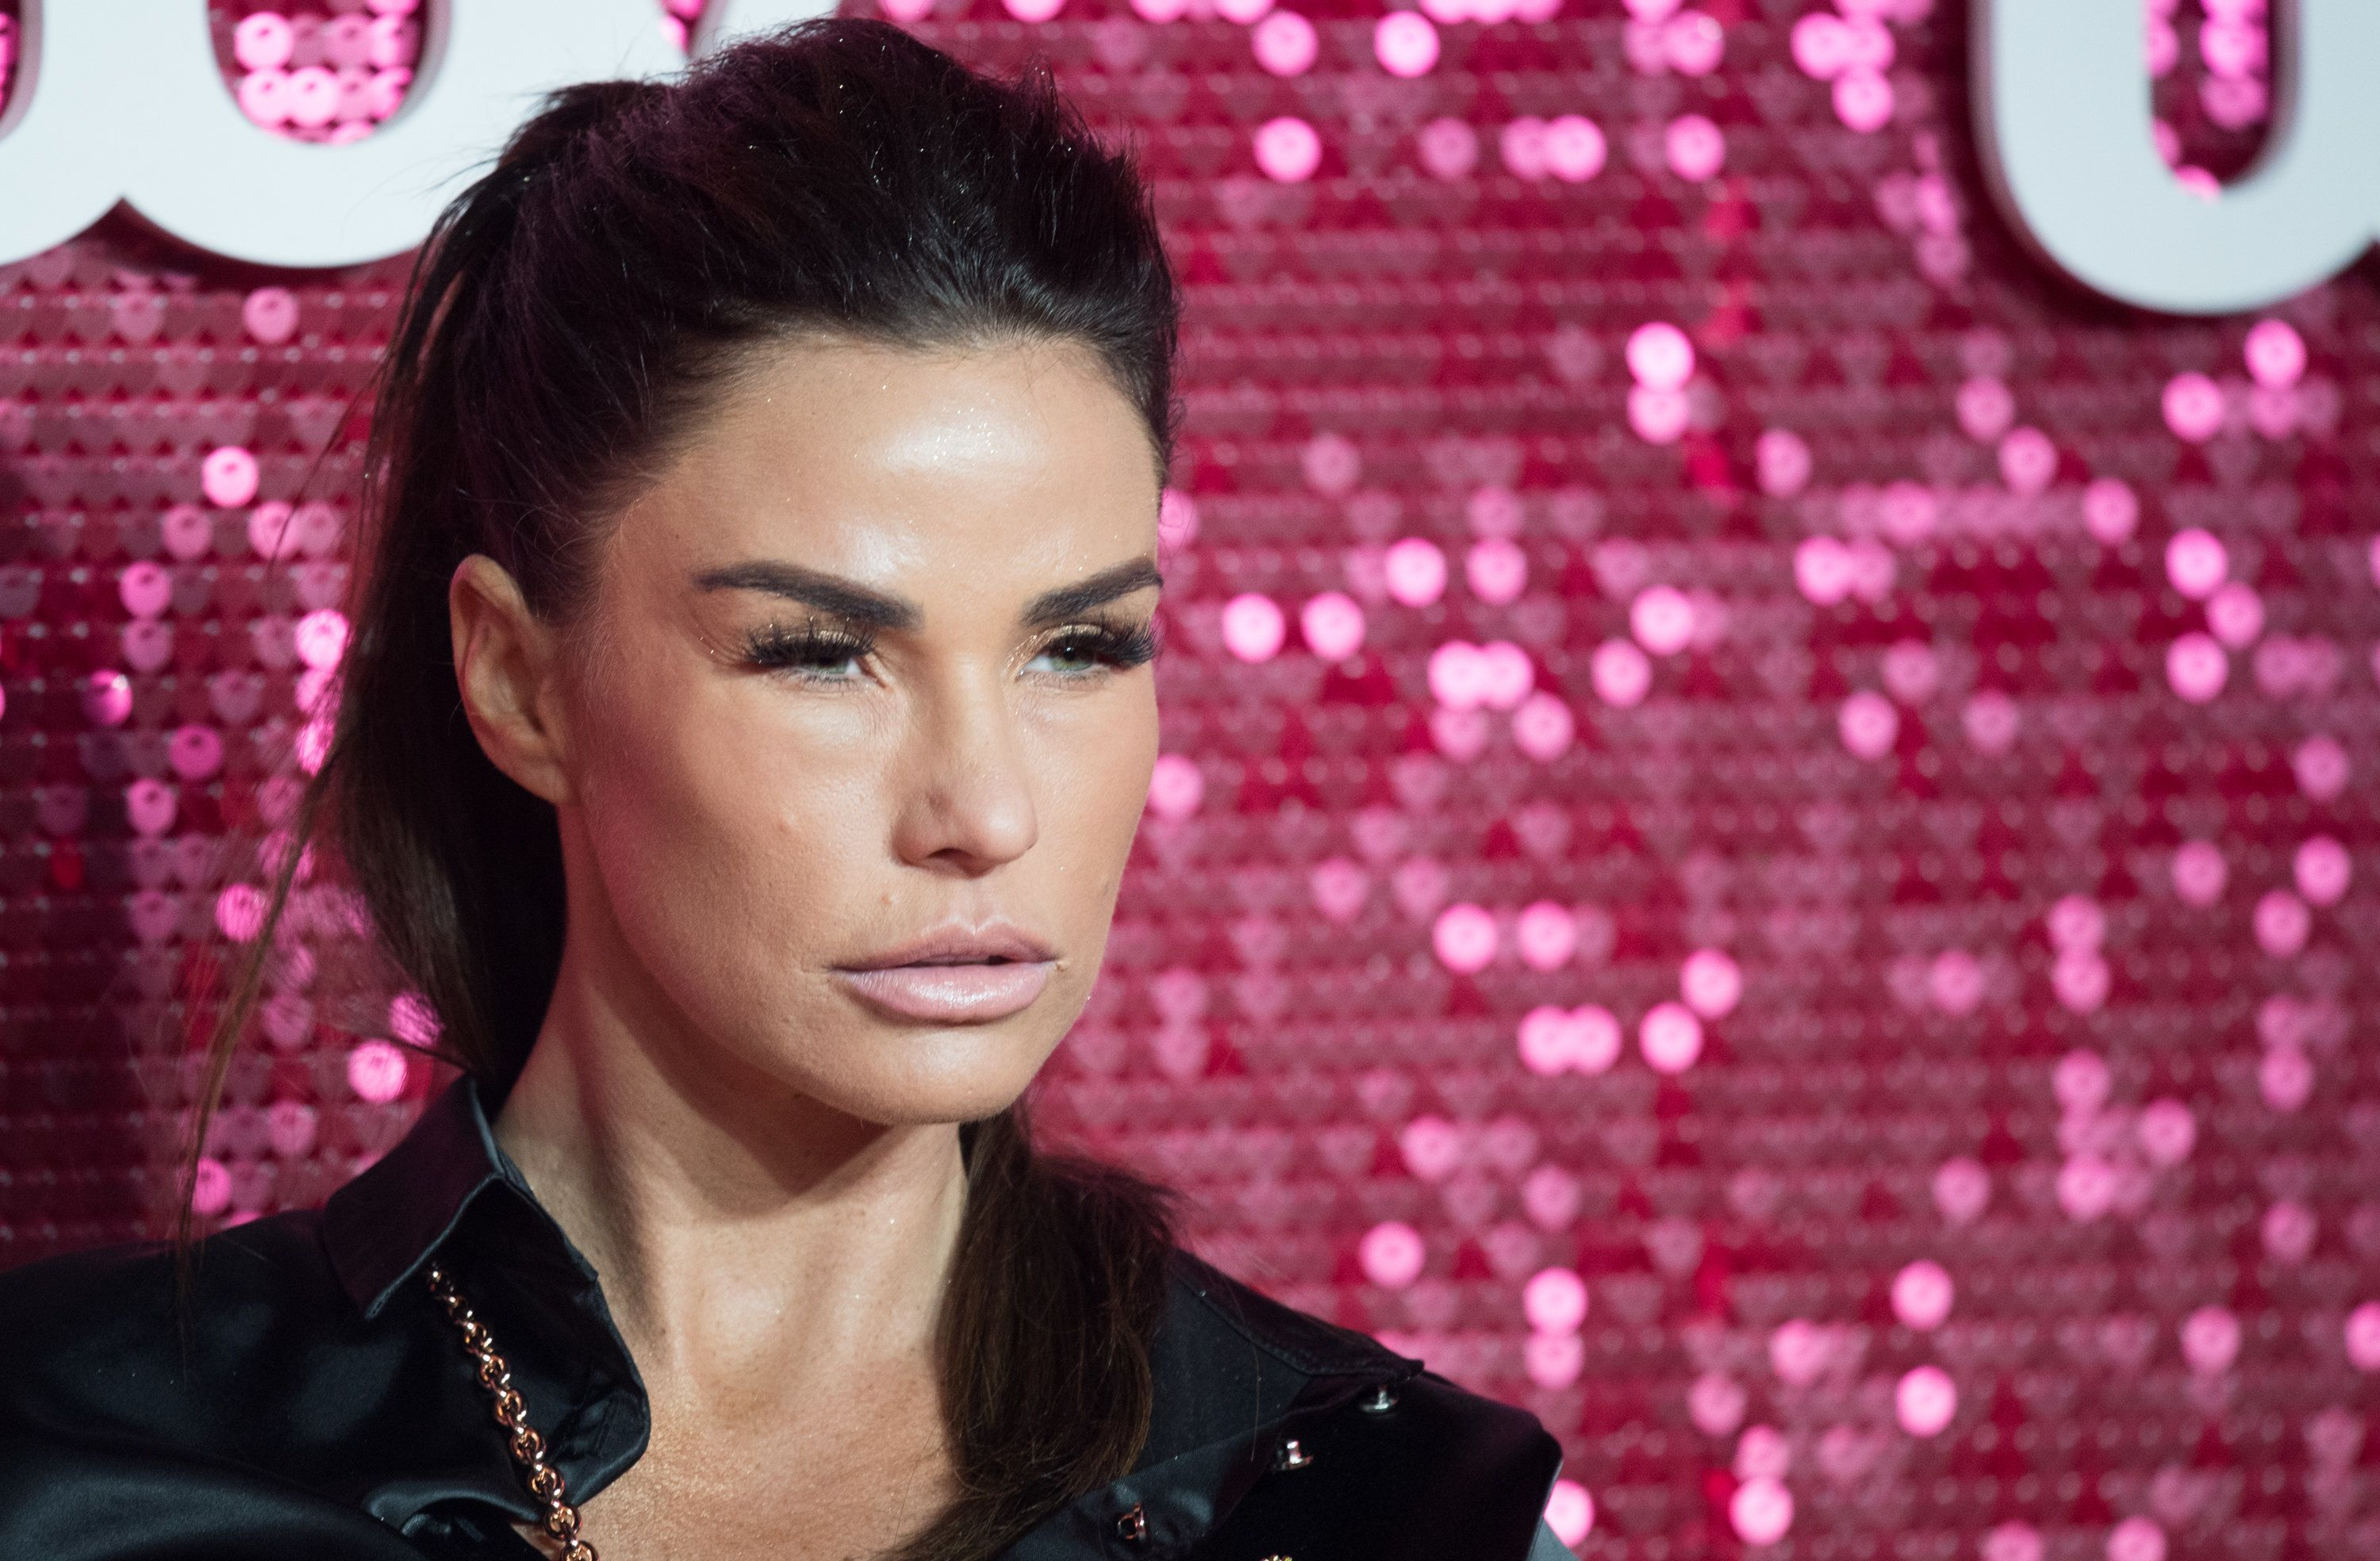 Katie Price Shuts Down Speculation Her Children Have Been Placed Into Foster